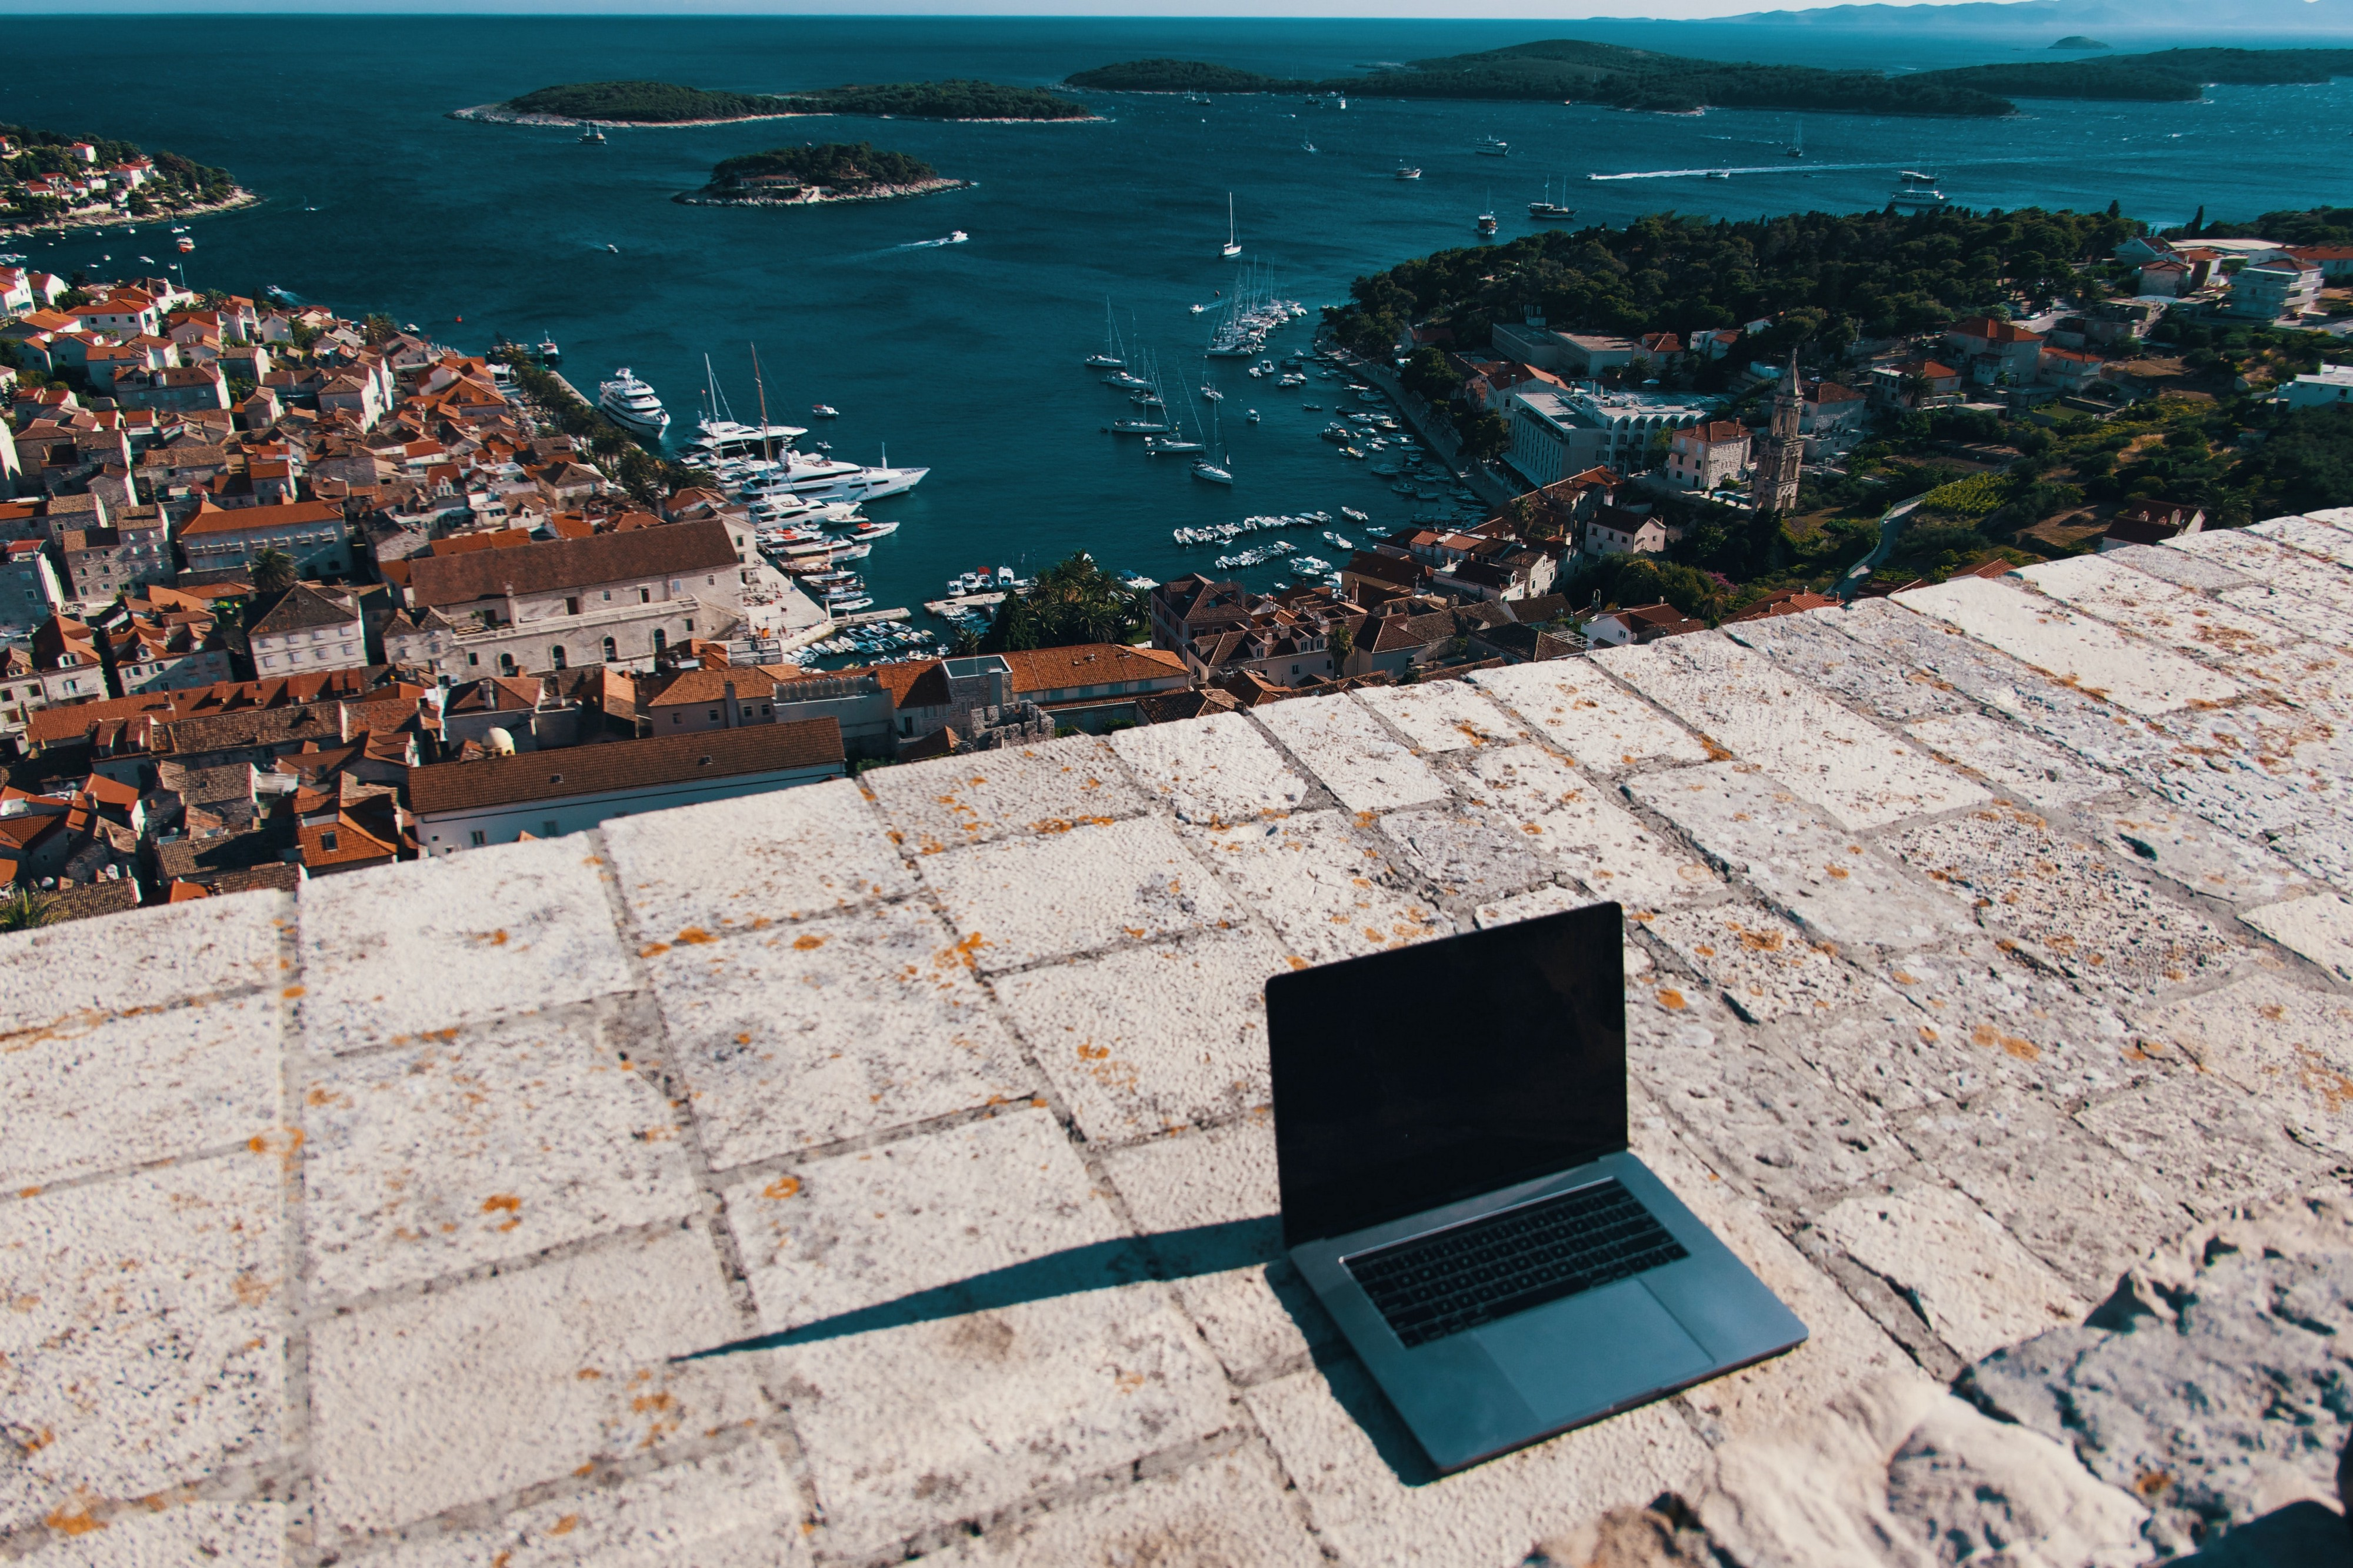 Laptop on brick wall with view of ocean and town behind it.